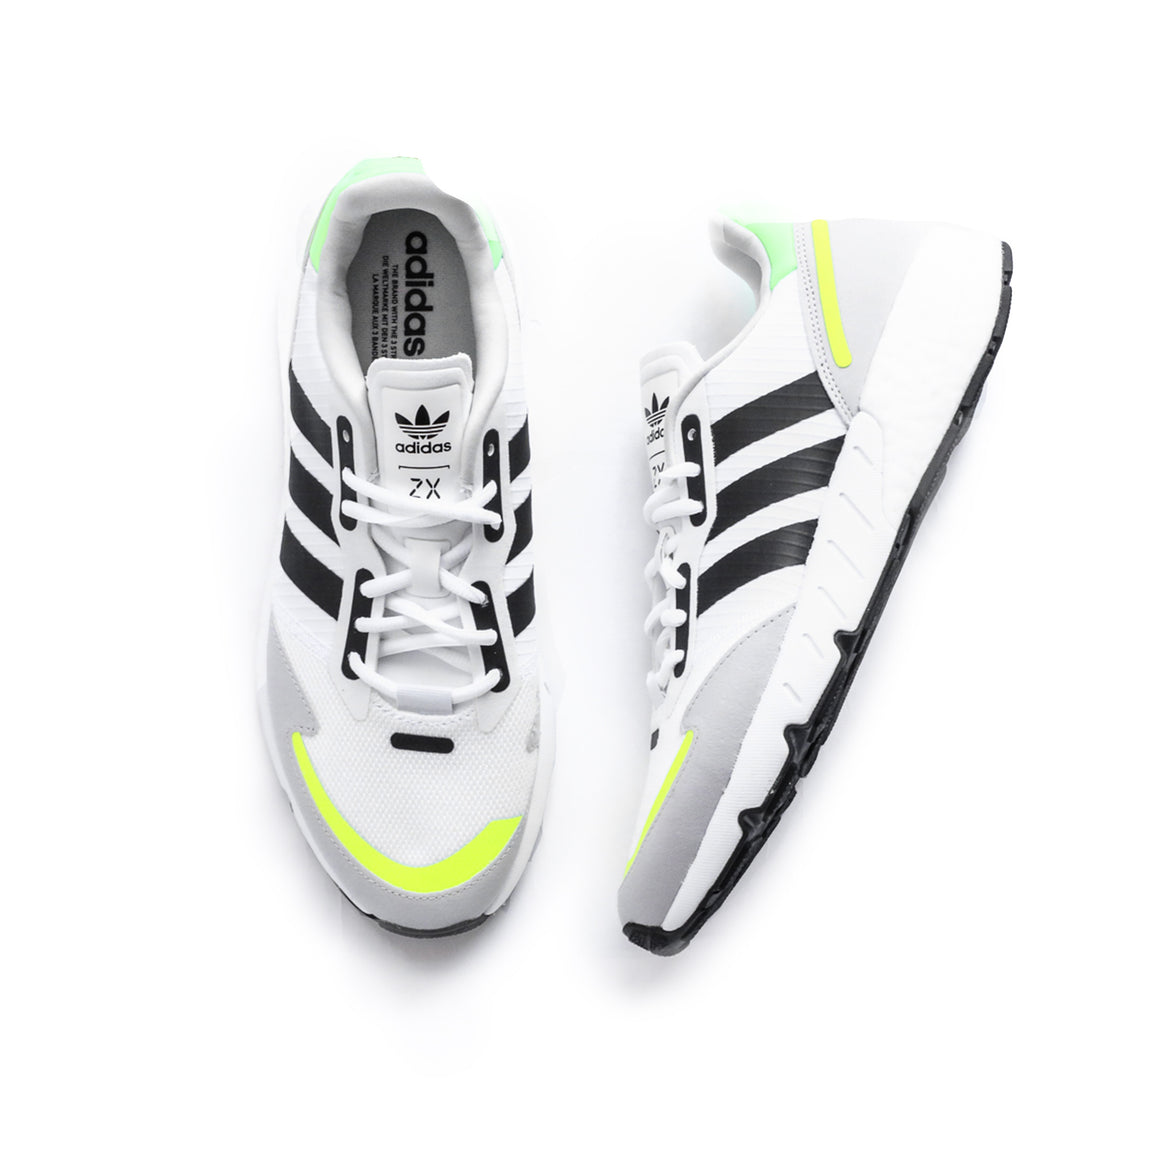 Adidas ZX 1K Boost (Footwear White/ Core Black/ Solar Yellow) - Adidas ZX 1K Boost (Footwear White/ Core Black/ Solar Yellow) -